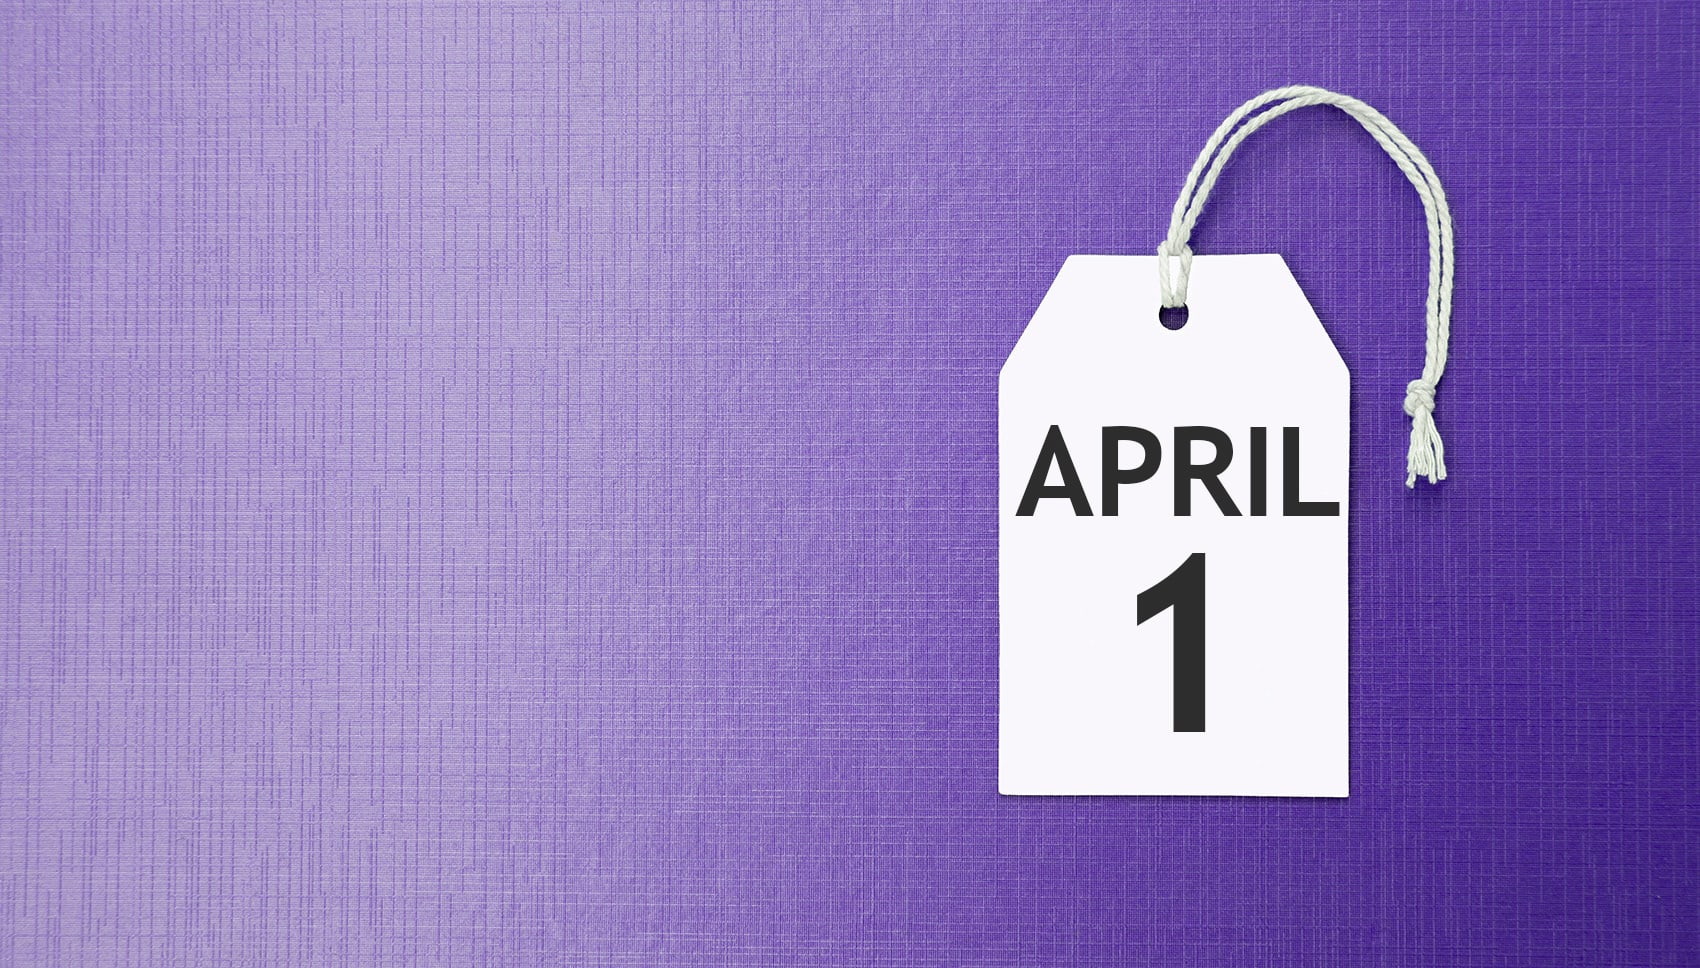 Beat the April price revision